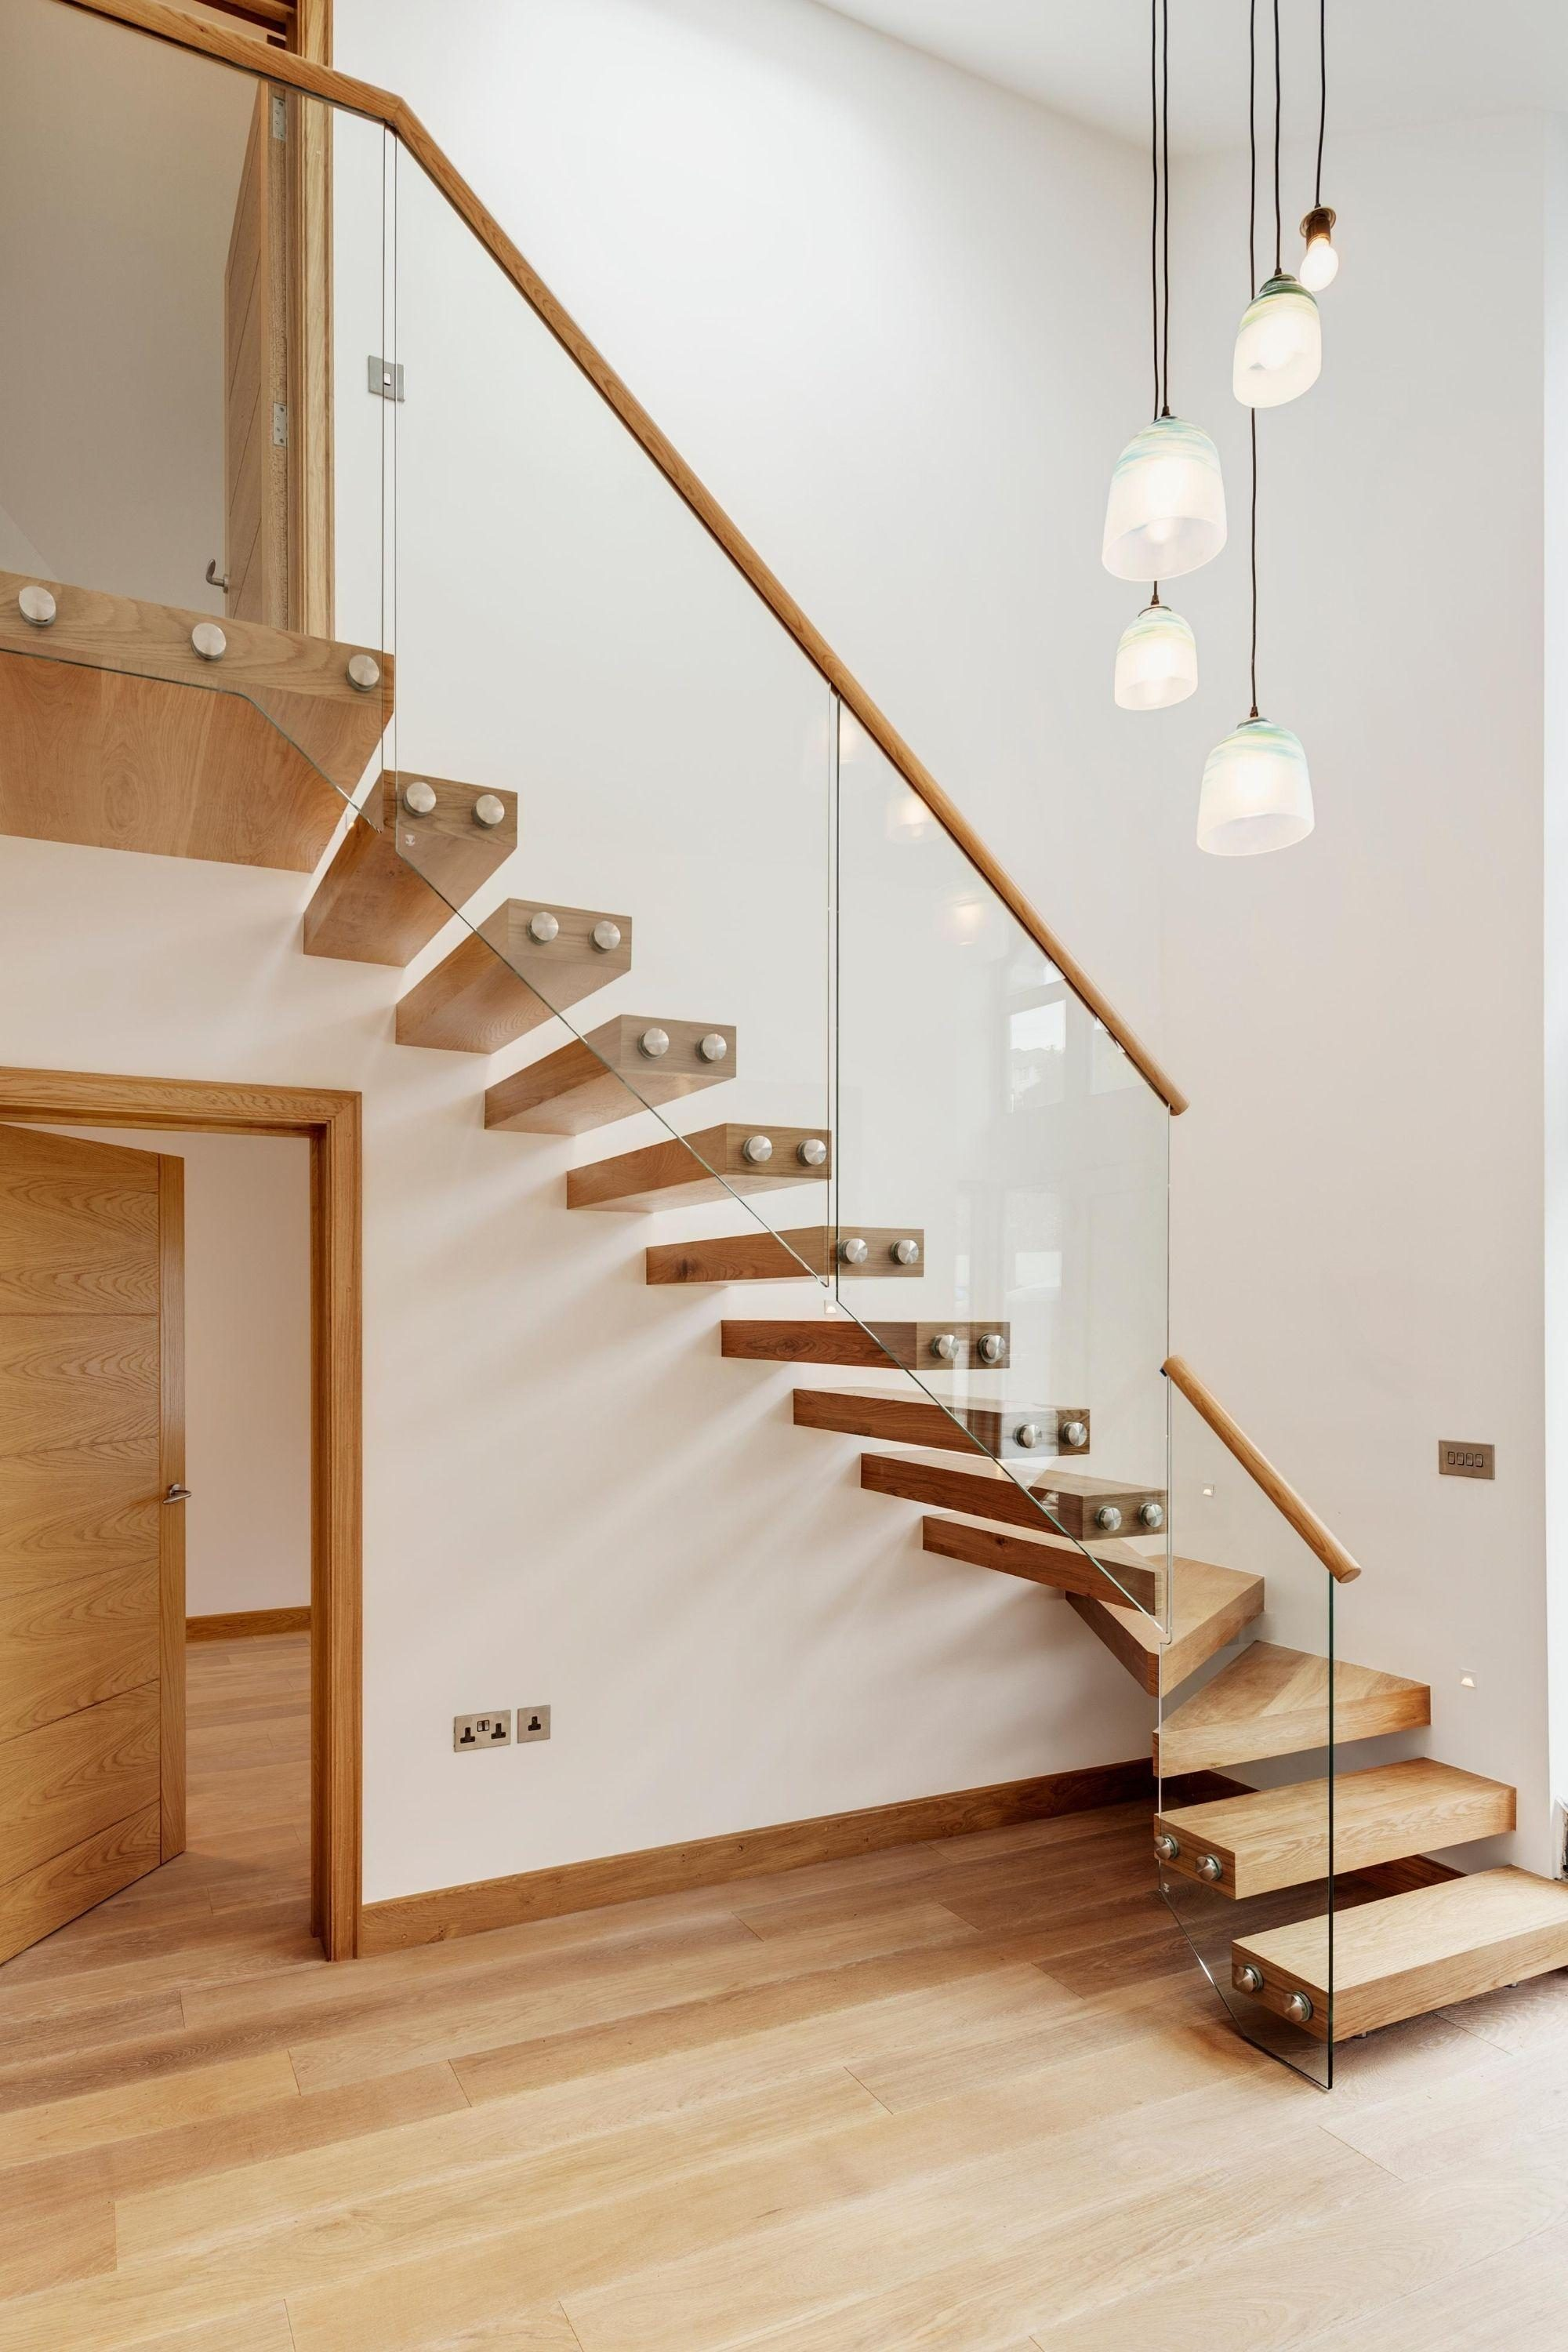 Cantilever staircase with oak treads